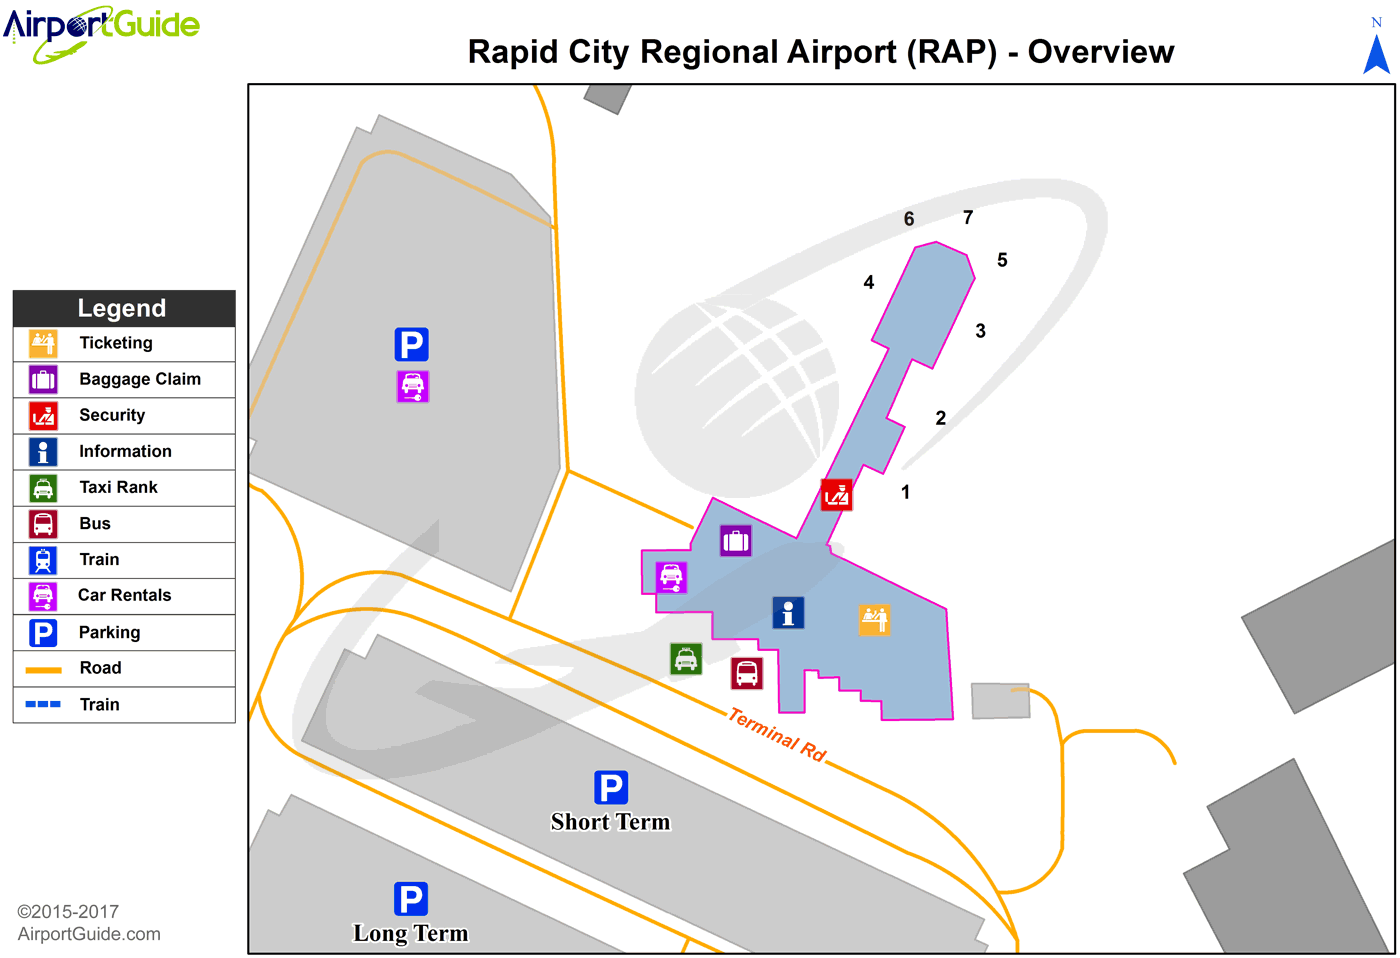 Rapid City - Rapid City Regional (RAP) Airport Terminal Map - Overview